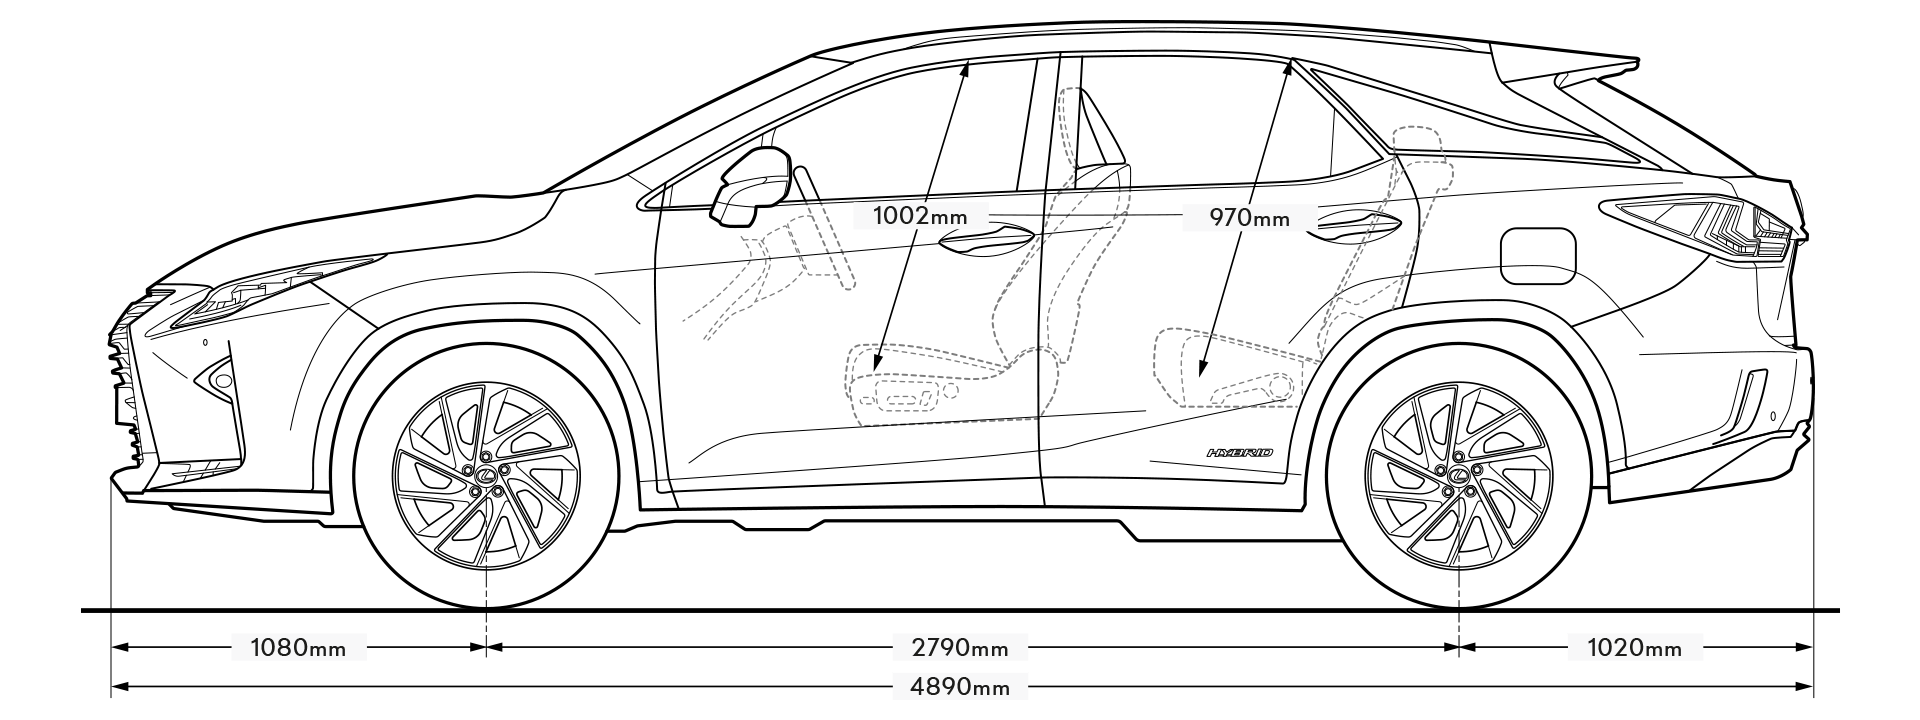 RX Side Dimensions Image